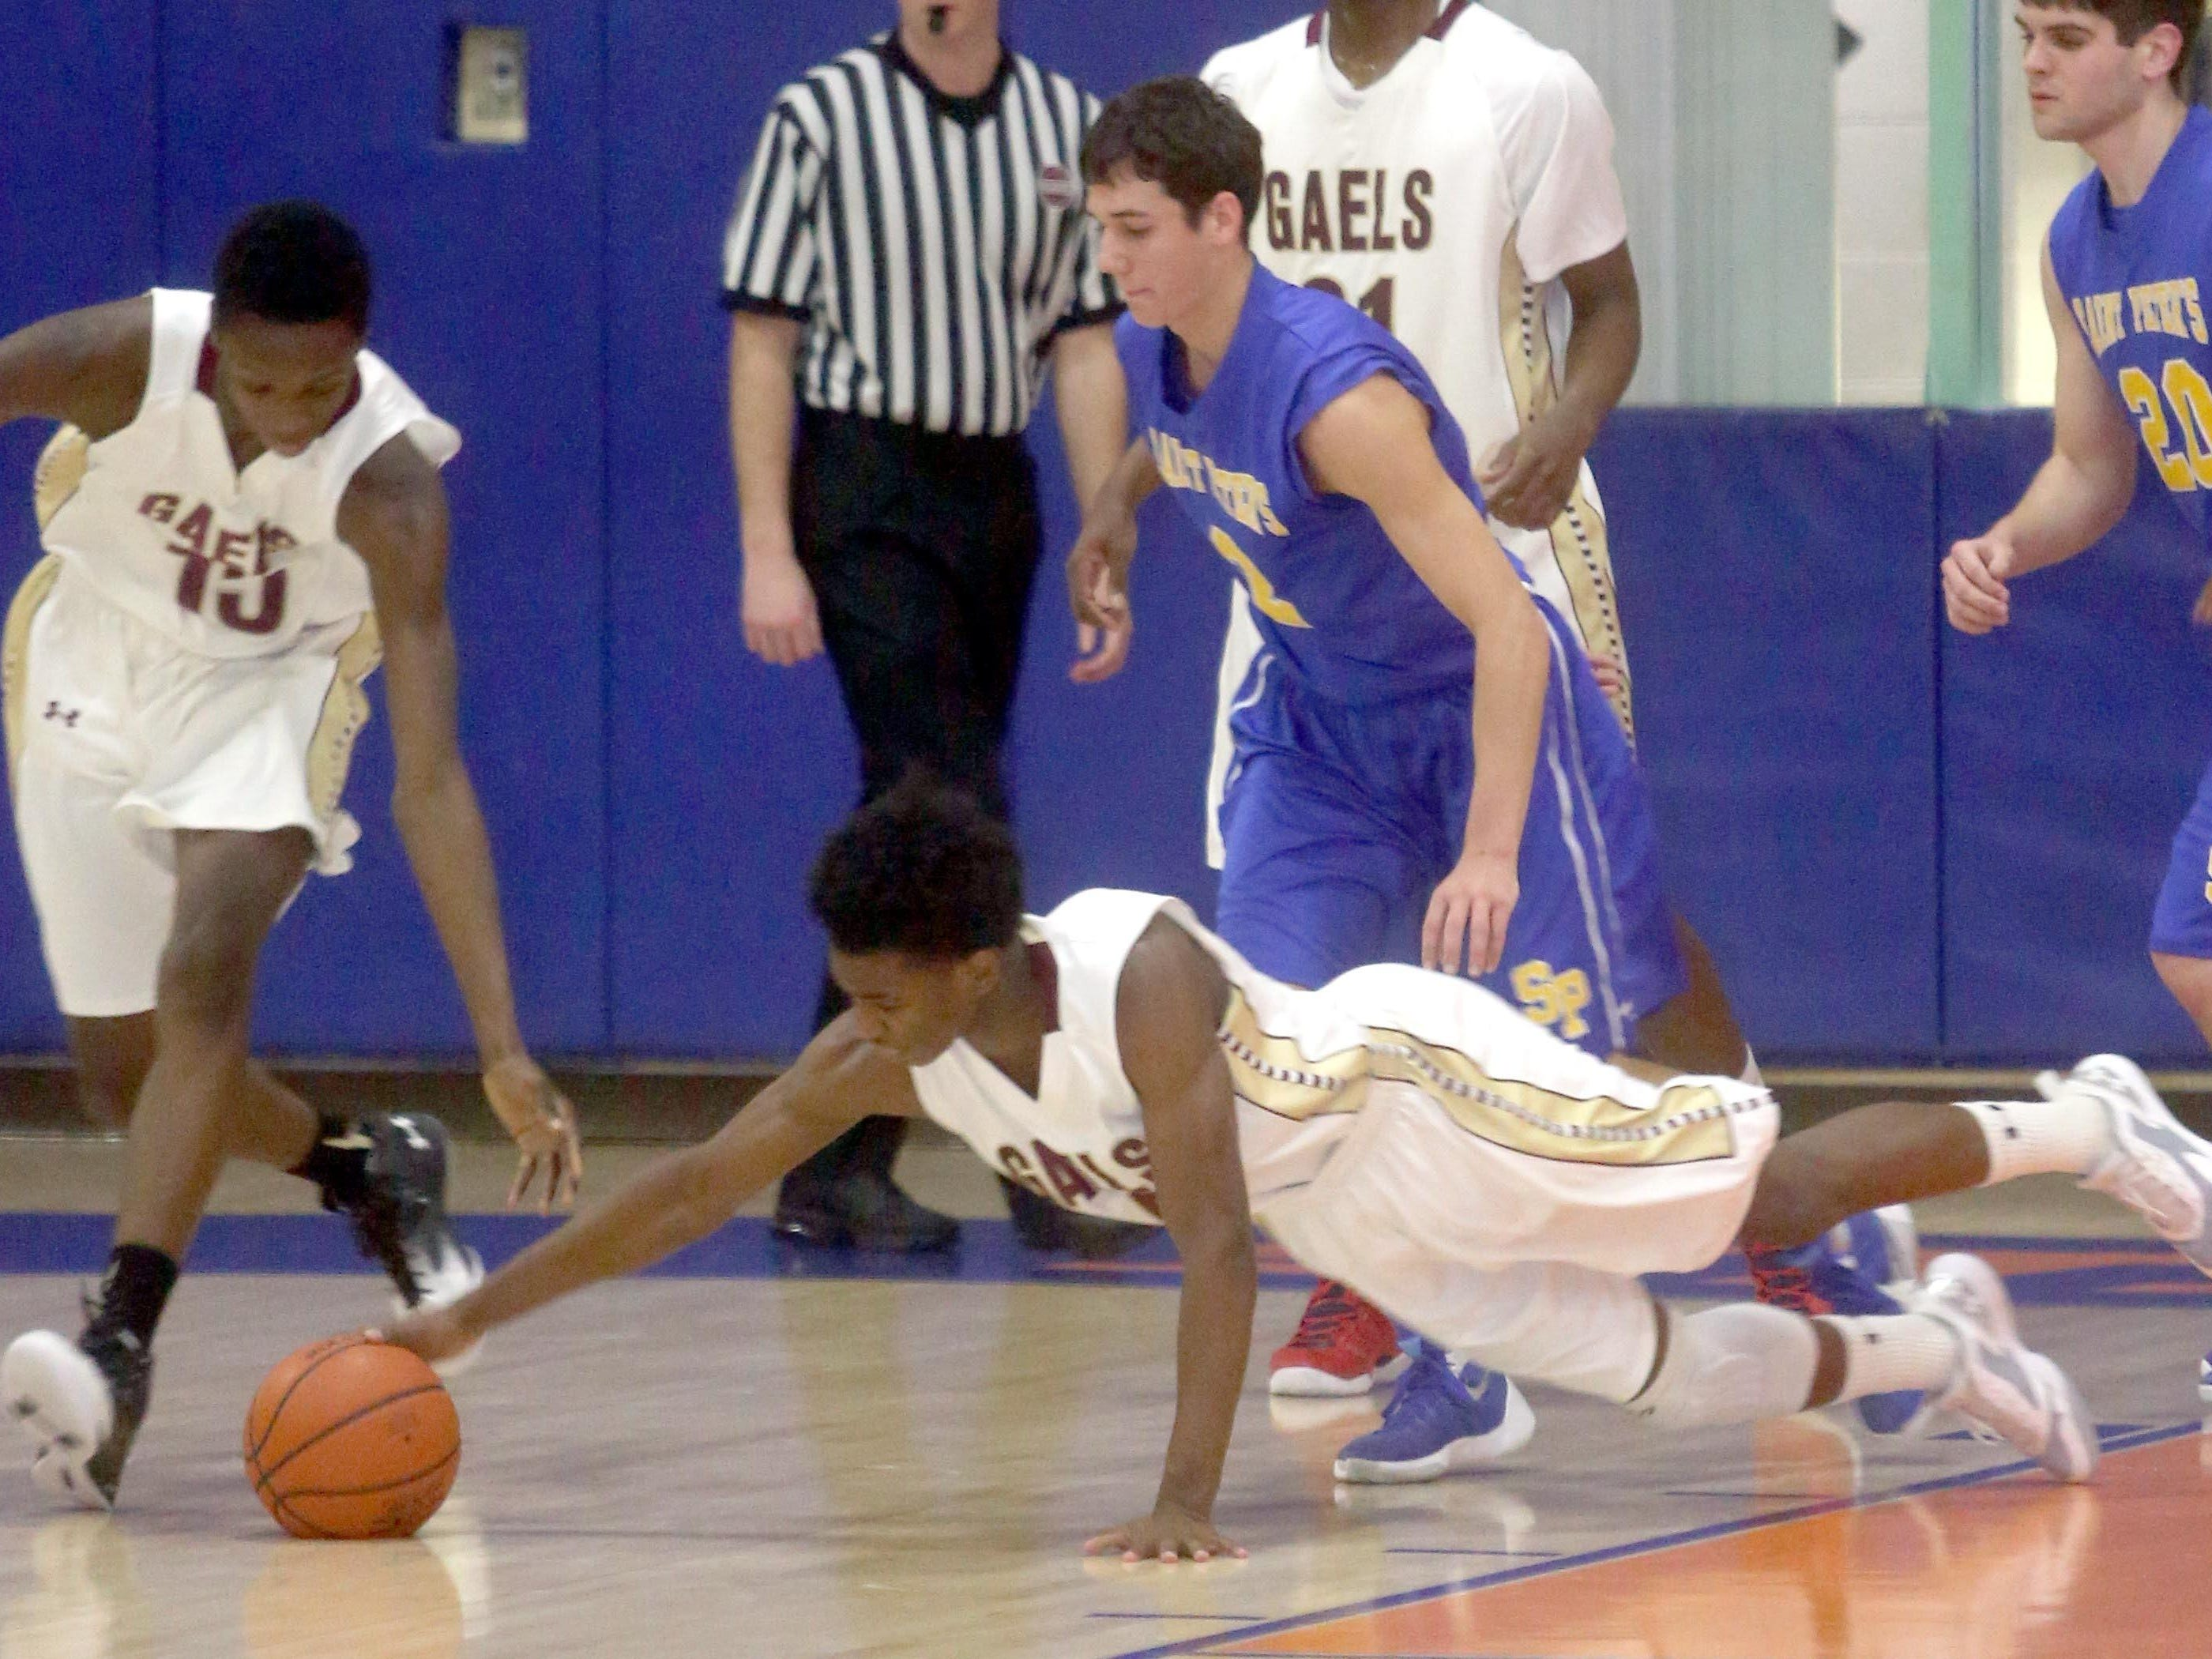 Iona Prep's Gio Gabbidon dives for a loose ball during a CHSAA second-round AA playoff game against St. Peter's. The Gaels won 51-43.